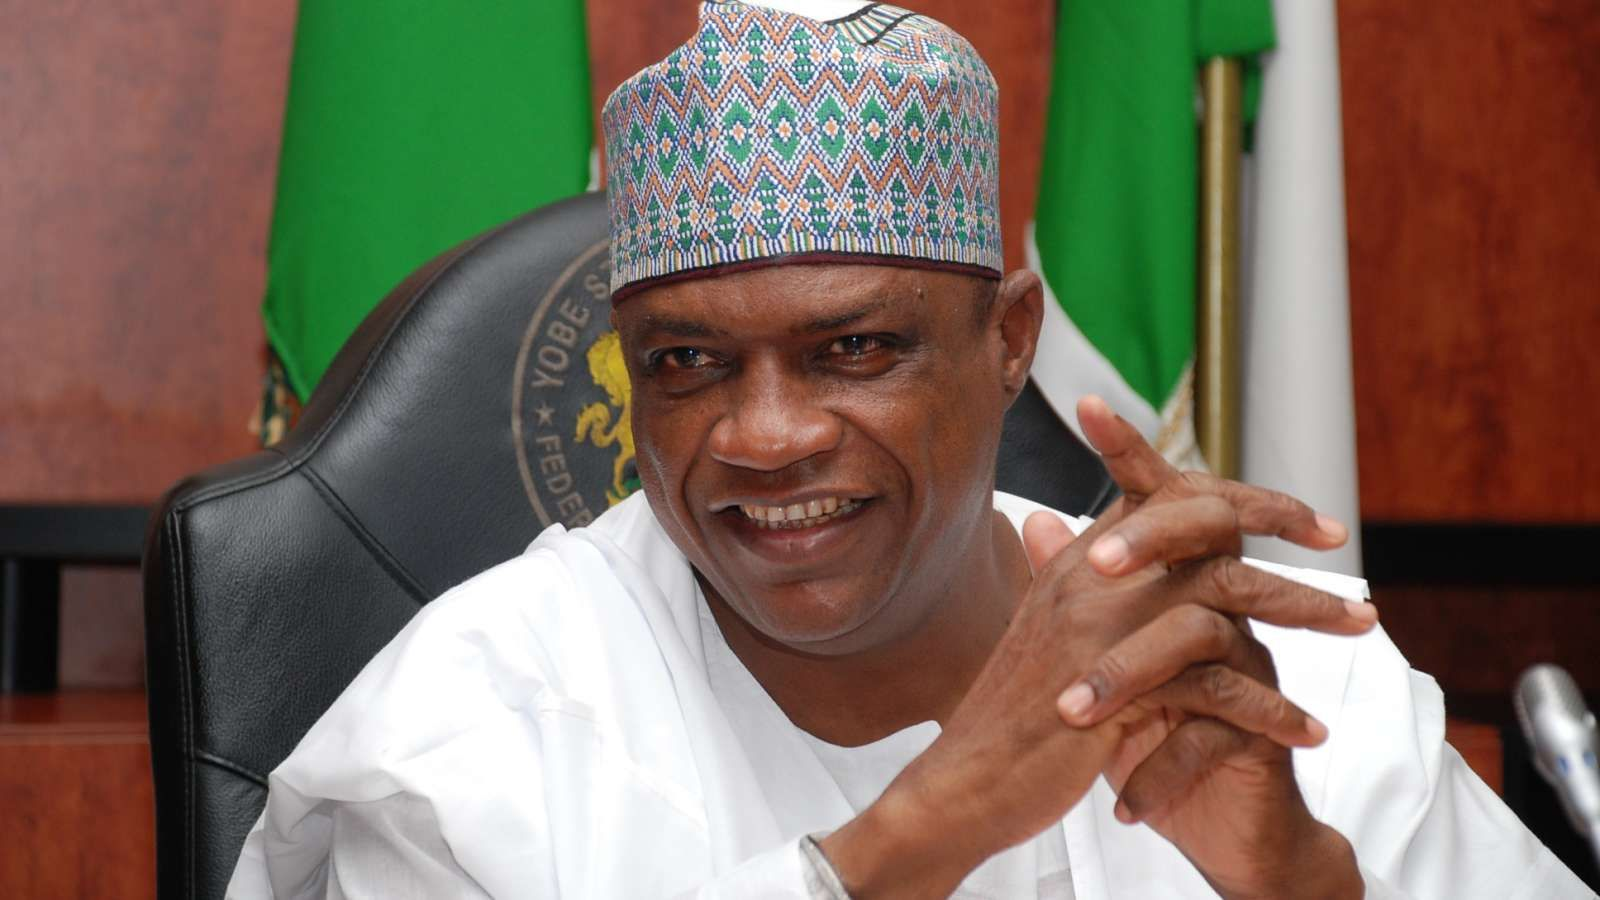 In Yobe: Govt. approves N940m for construction of College of Medical Sciences